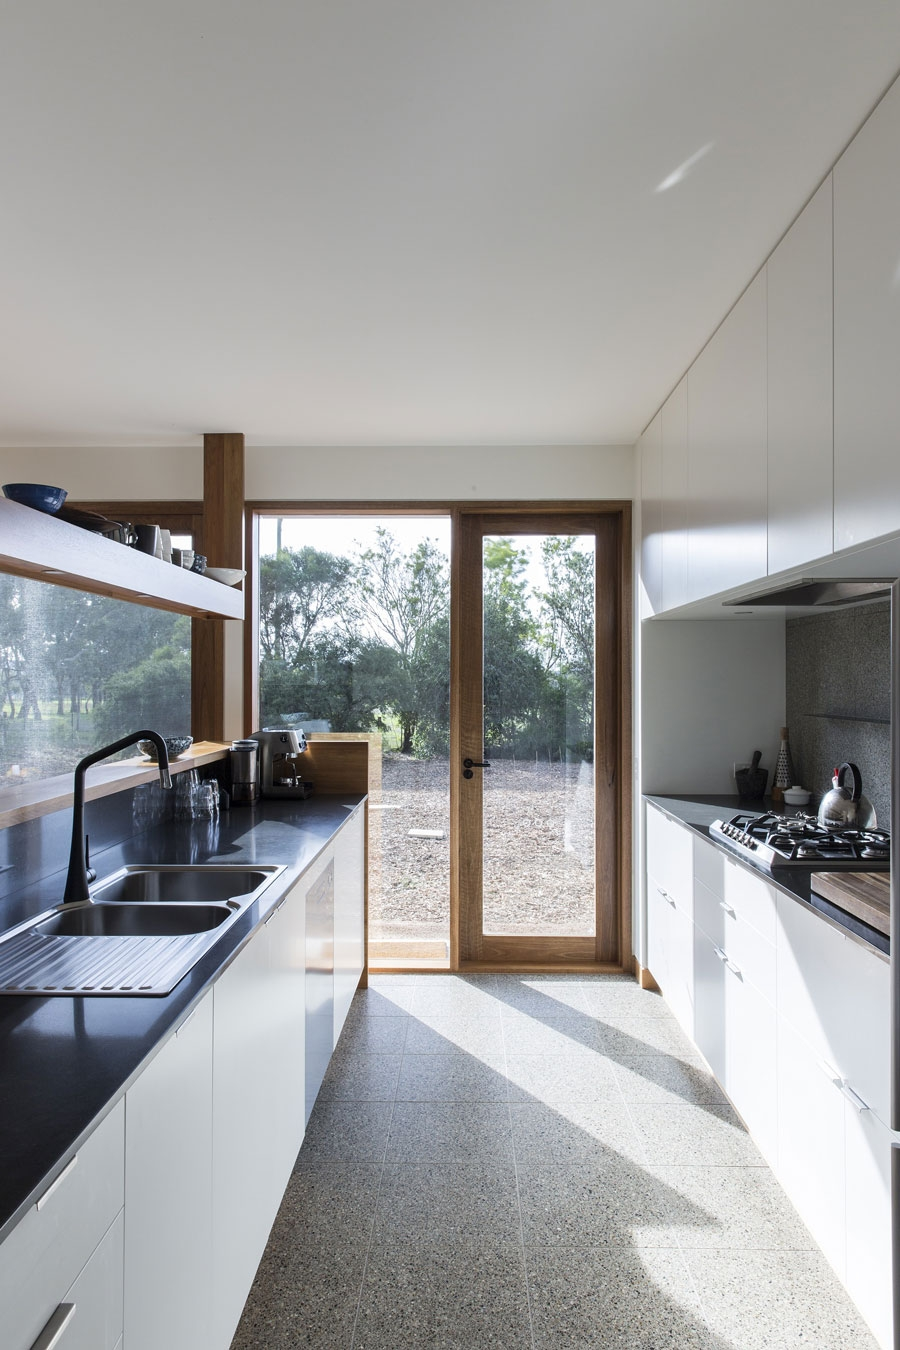 Energy Efficient Home Charms With A Distinct Roof And An